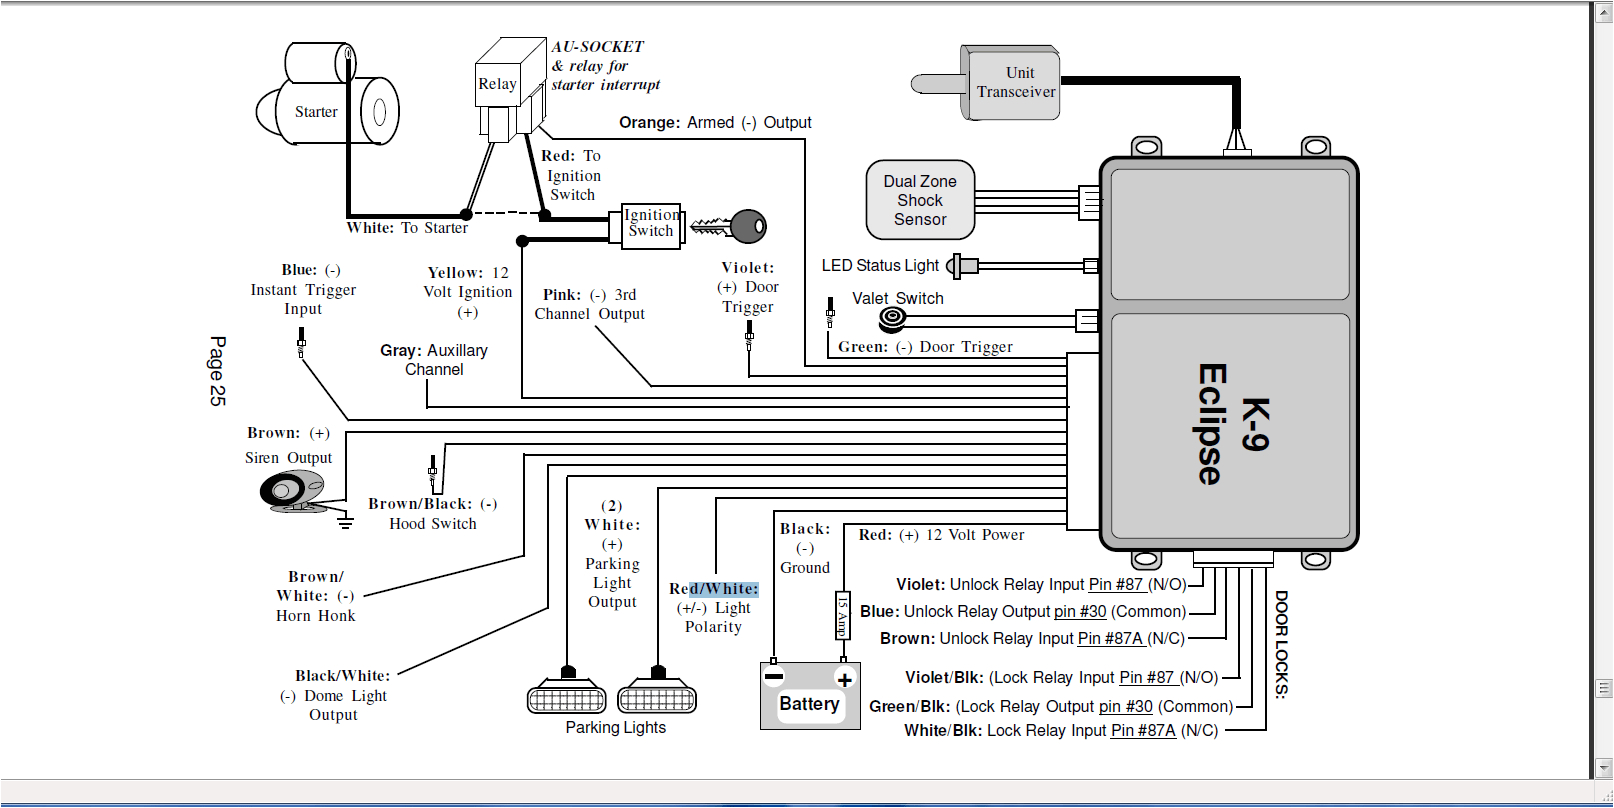 3606 viper alarm wiring diagram wiring diagram local 3606 viper alarm wiring diagram